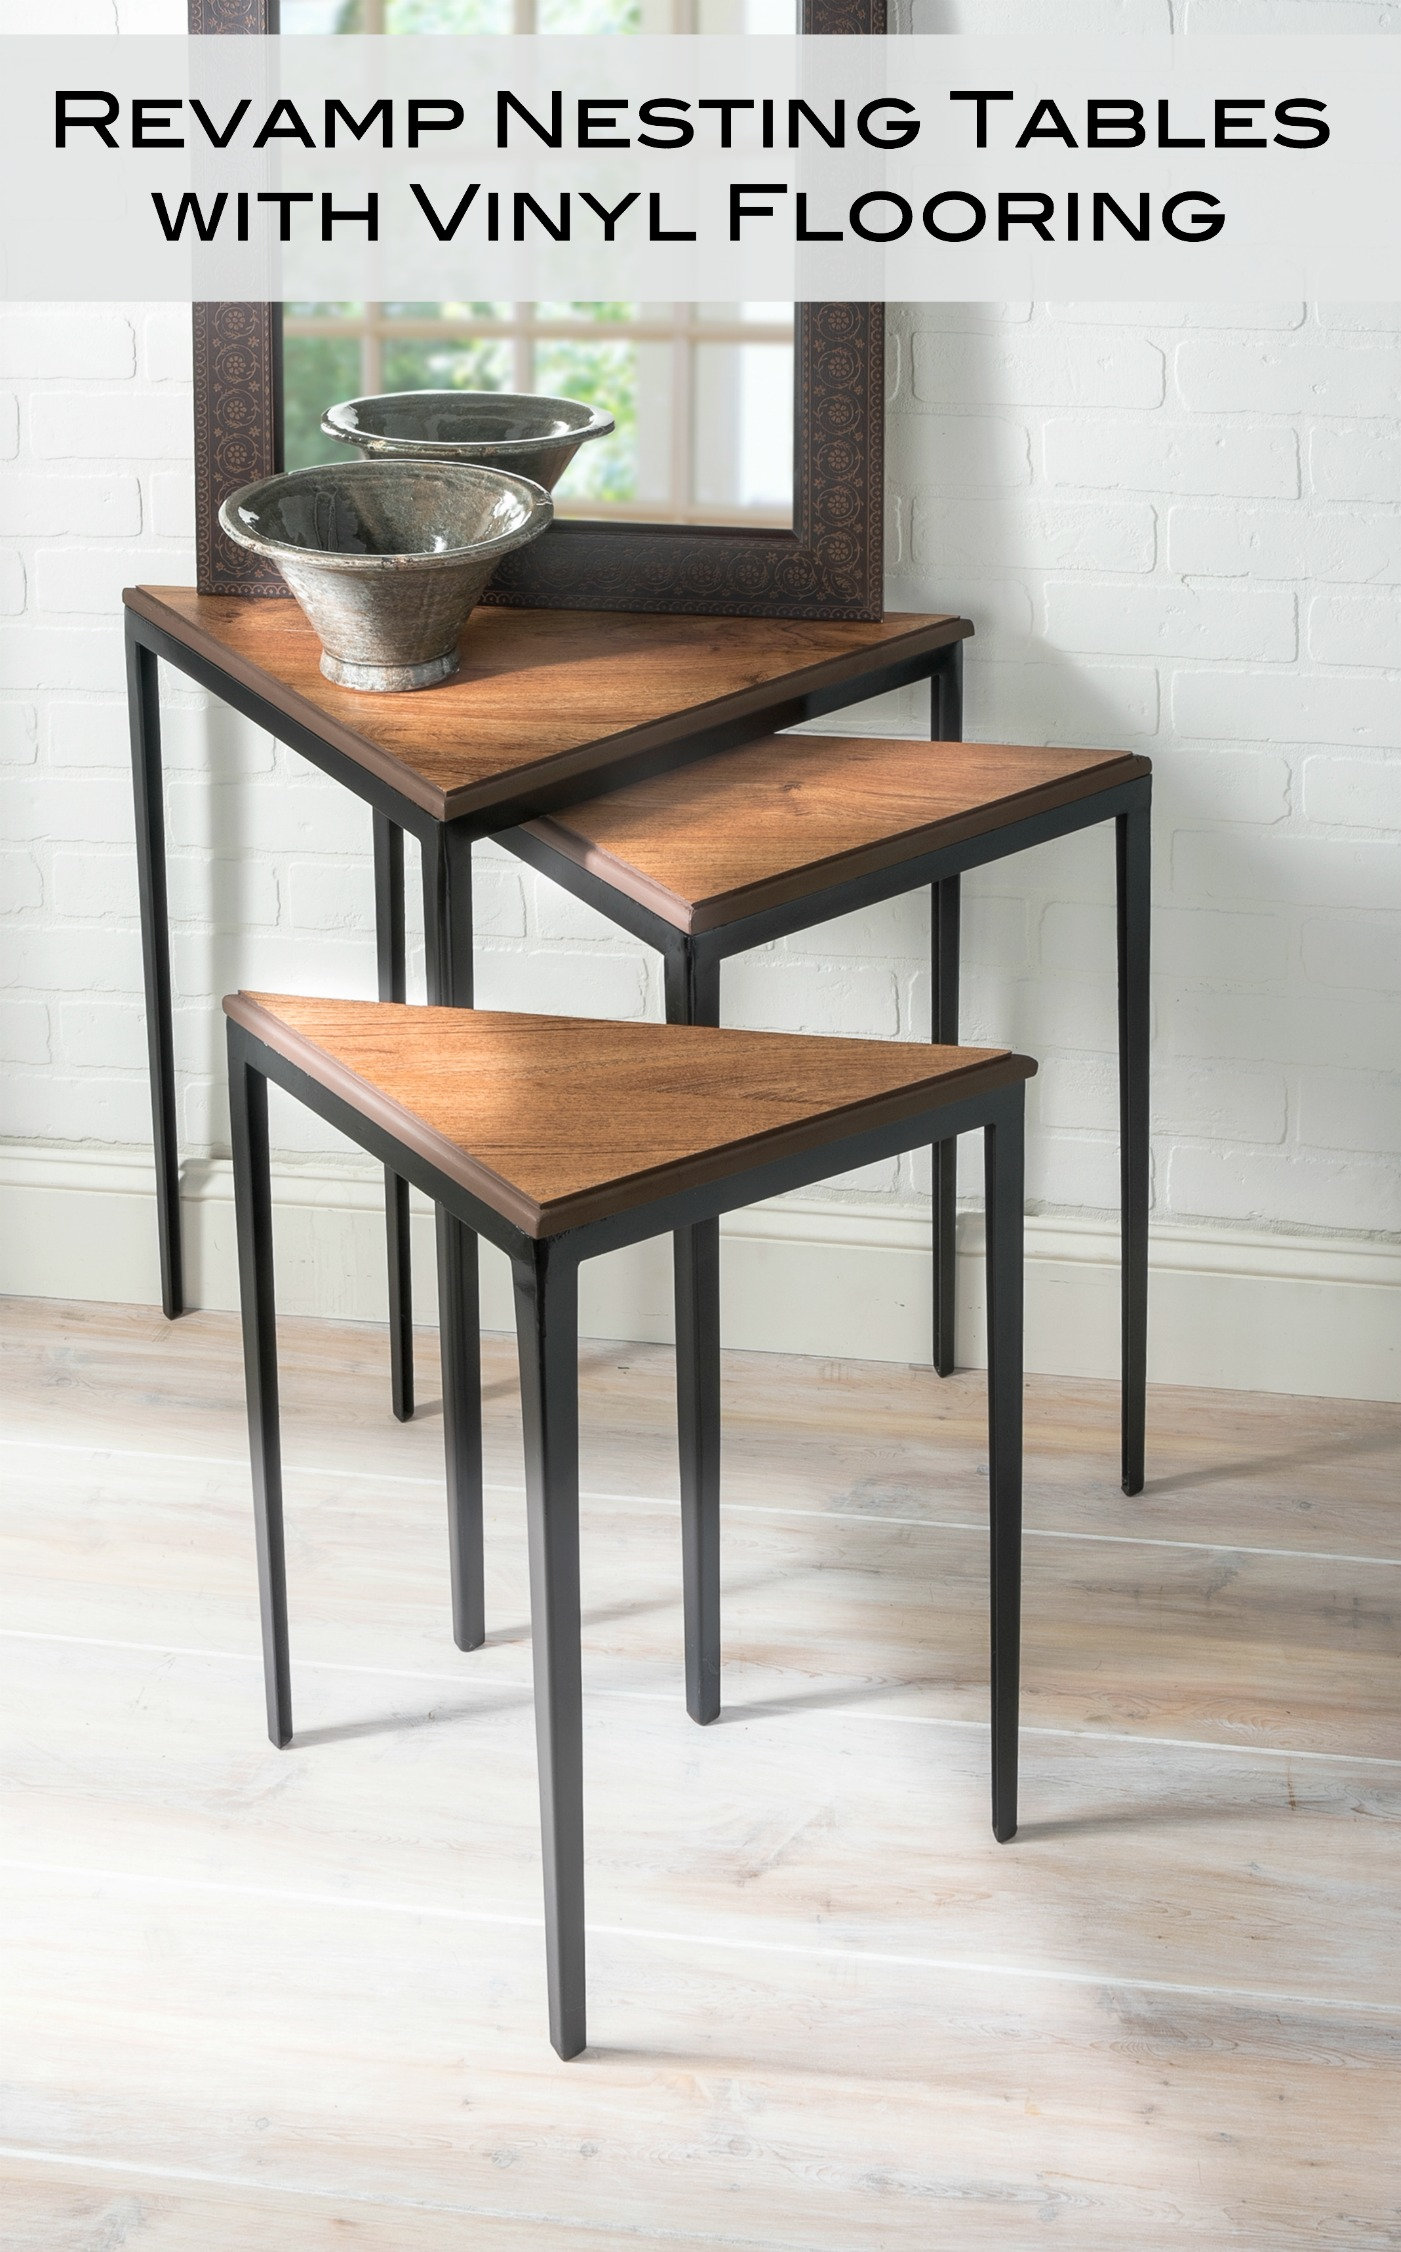 Learn how to revamp nesting tables using vinyl flooring! Leftover flooring makes a perfectly resilient and cost effective tabletop. We love the results!